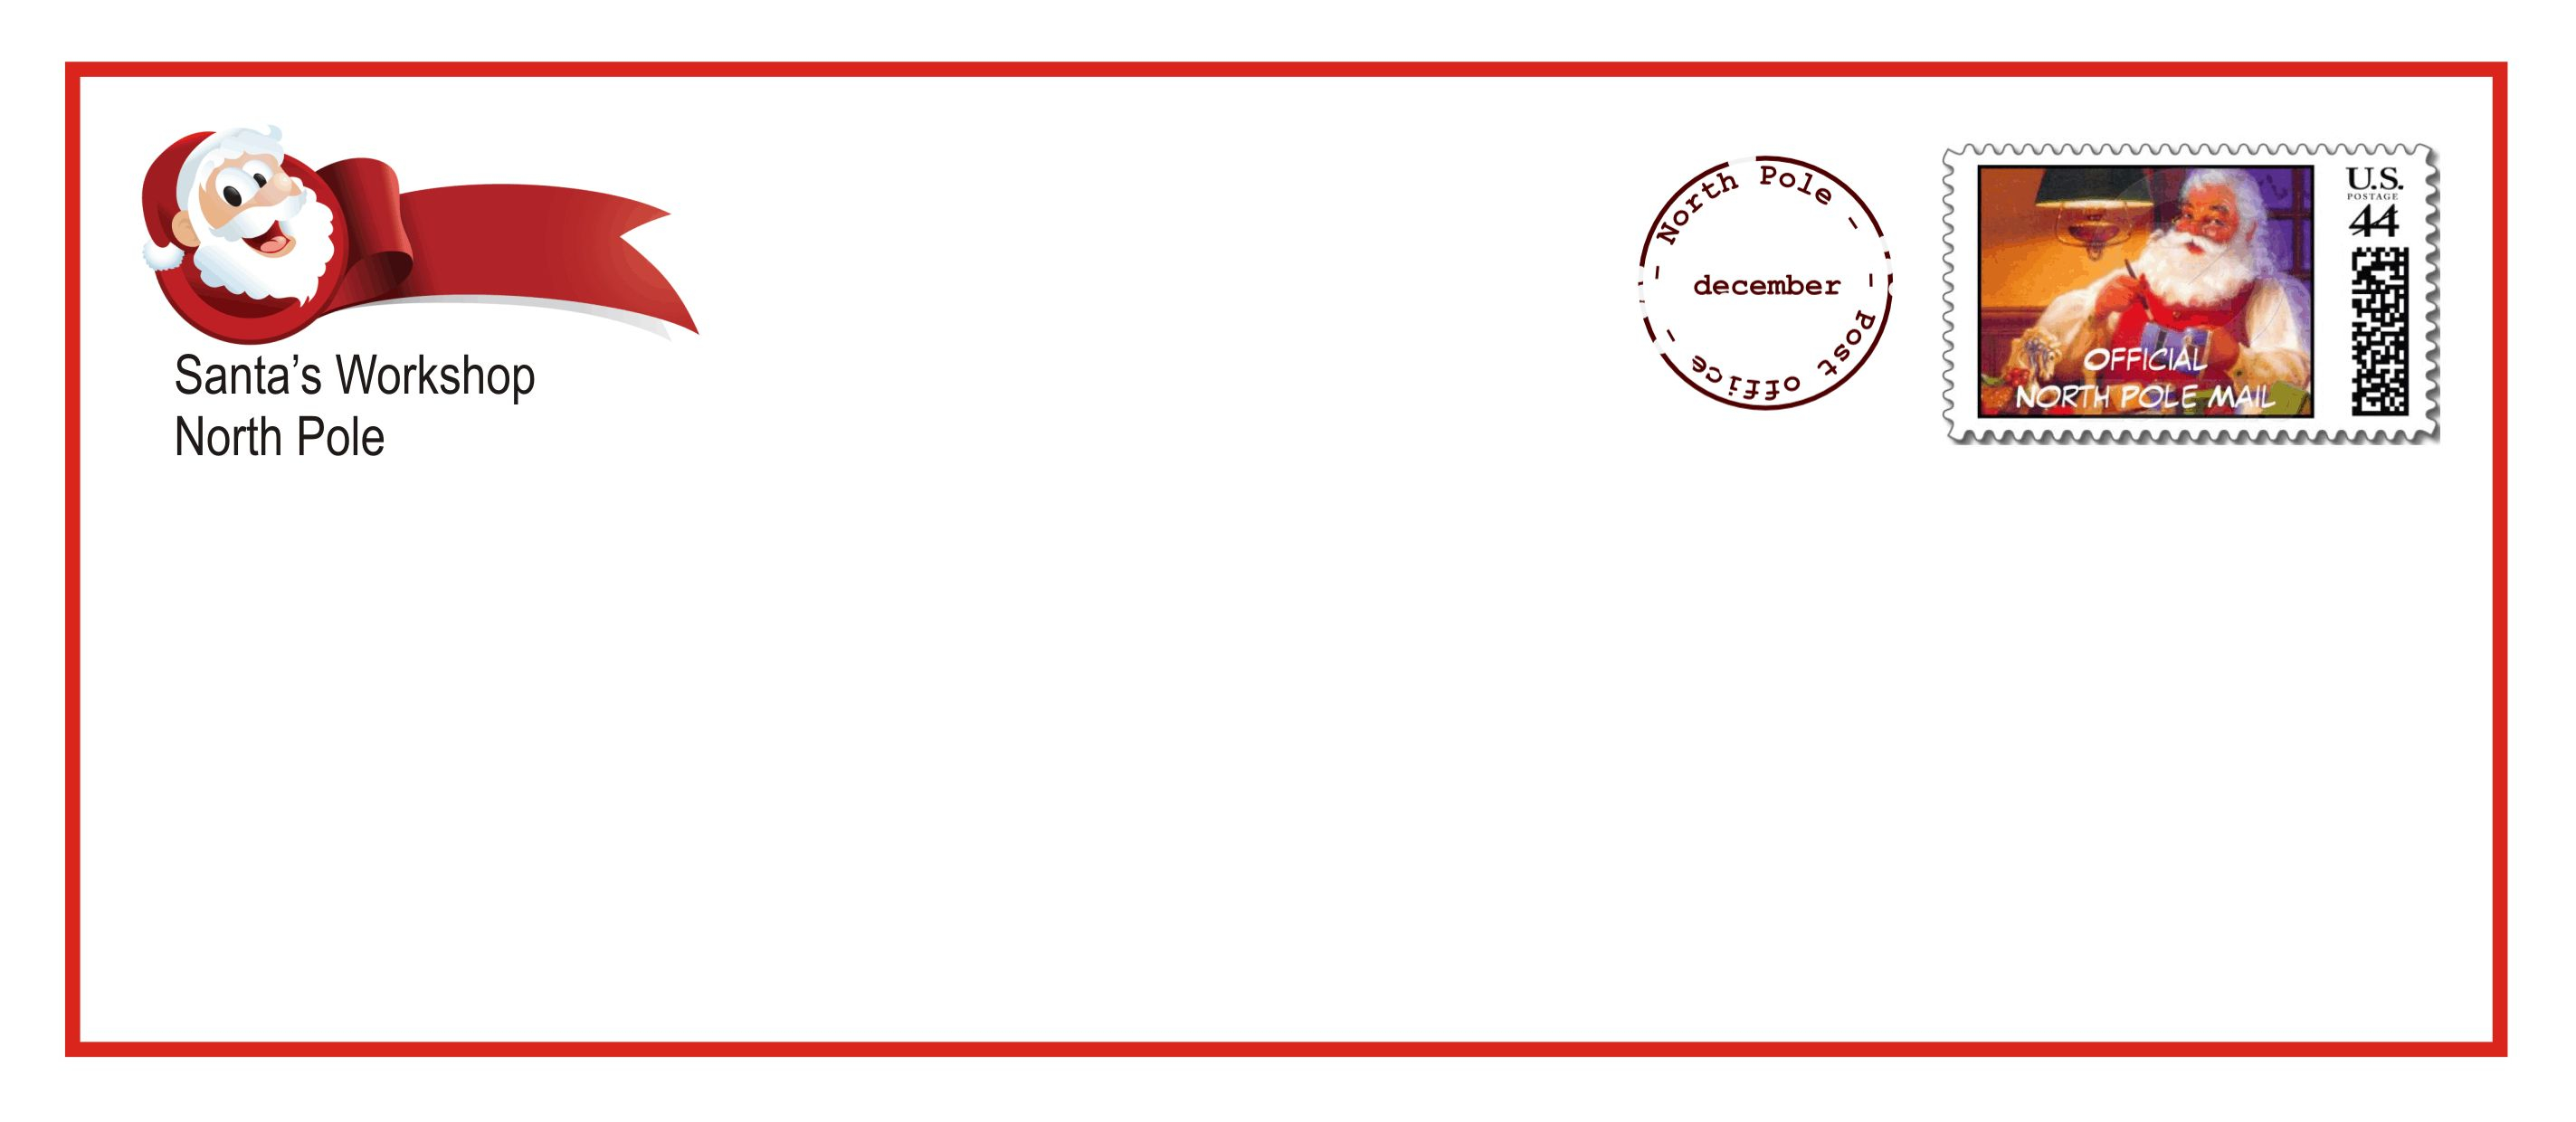 Santa Reply Letter Template - Printable Santa Letter Envelopes that E with the Upgraded Letter